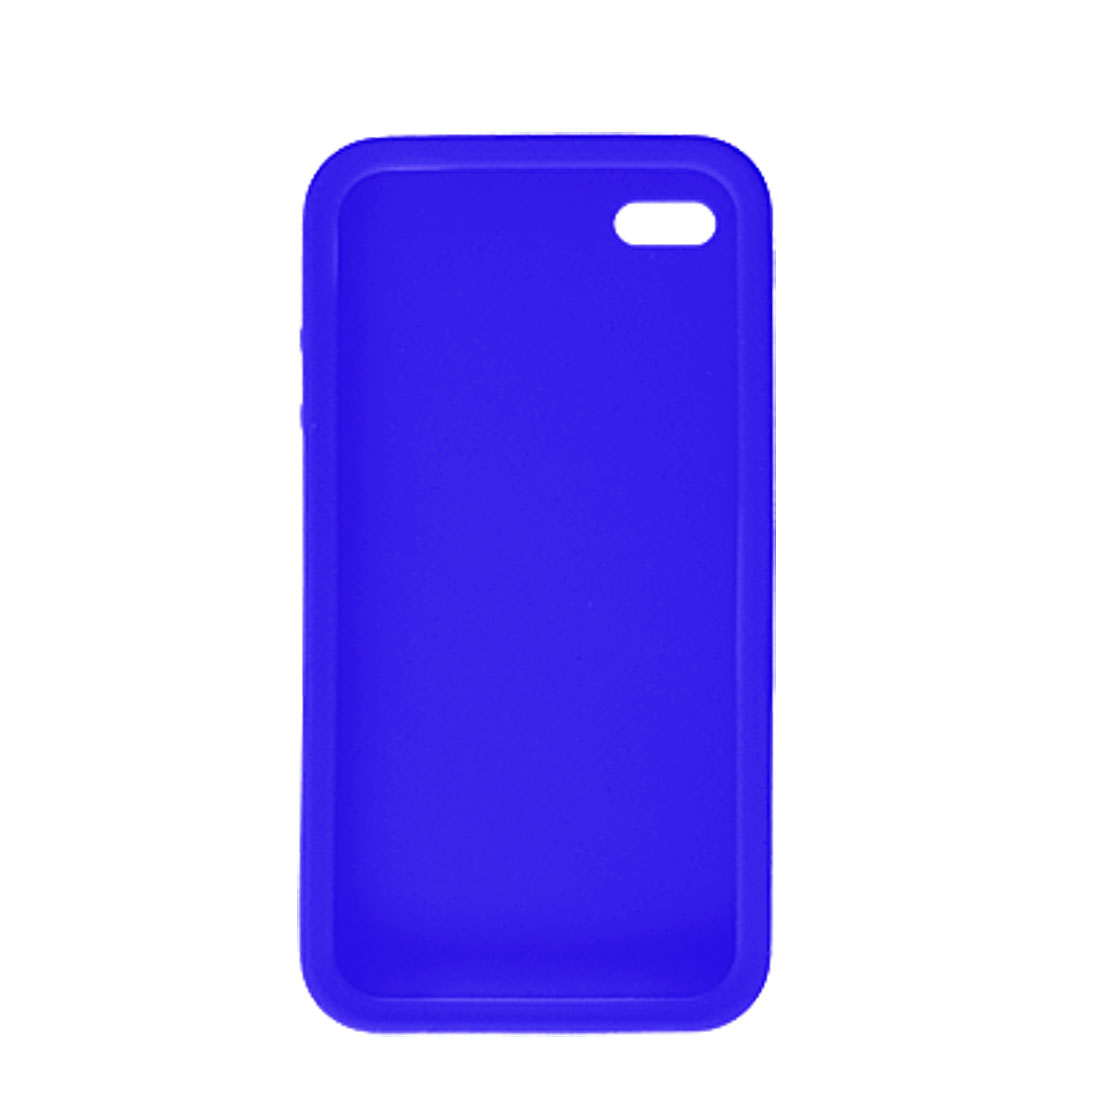 Blue Silicone Skin Soft Protector Case for Apple iPhone 4 4G